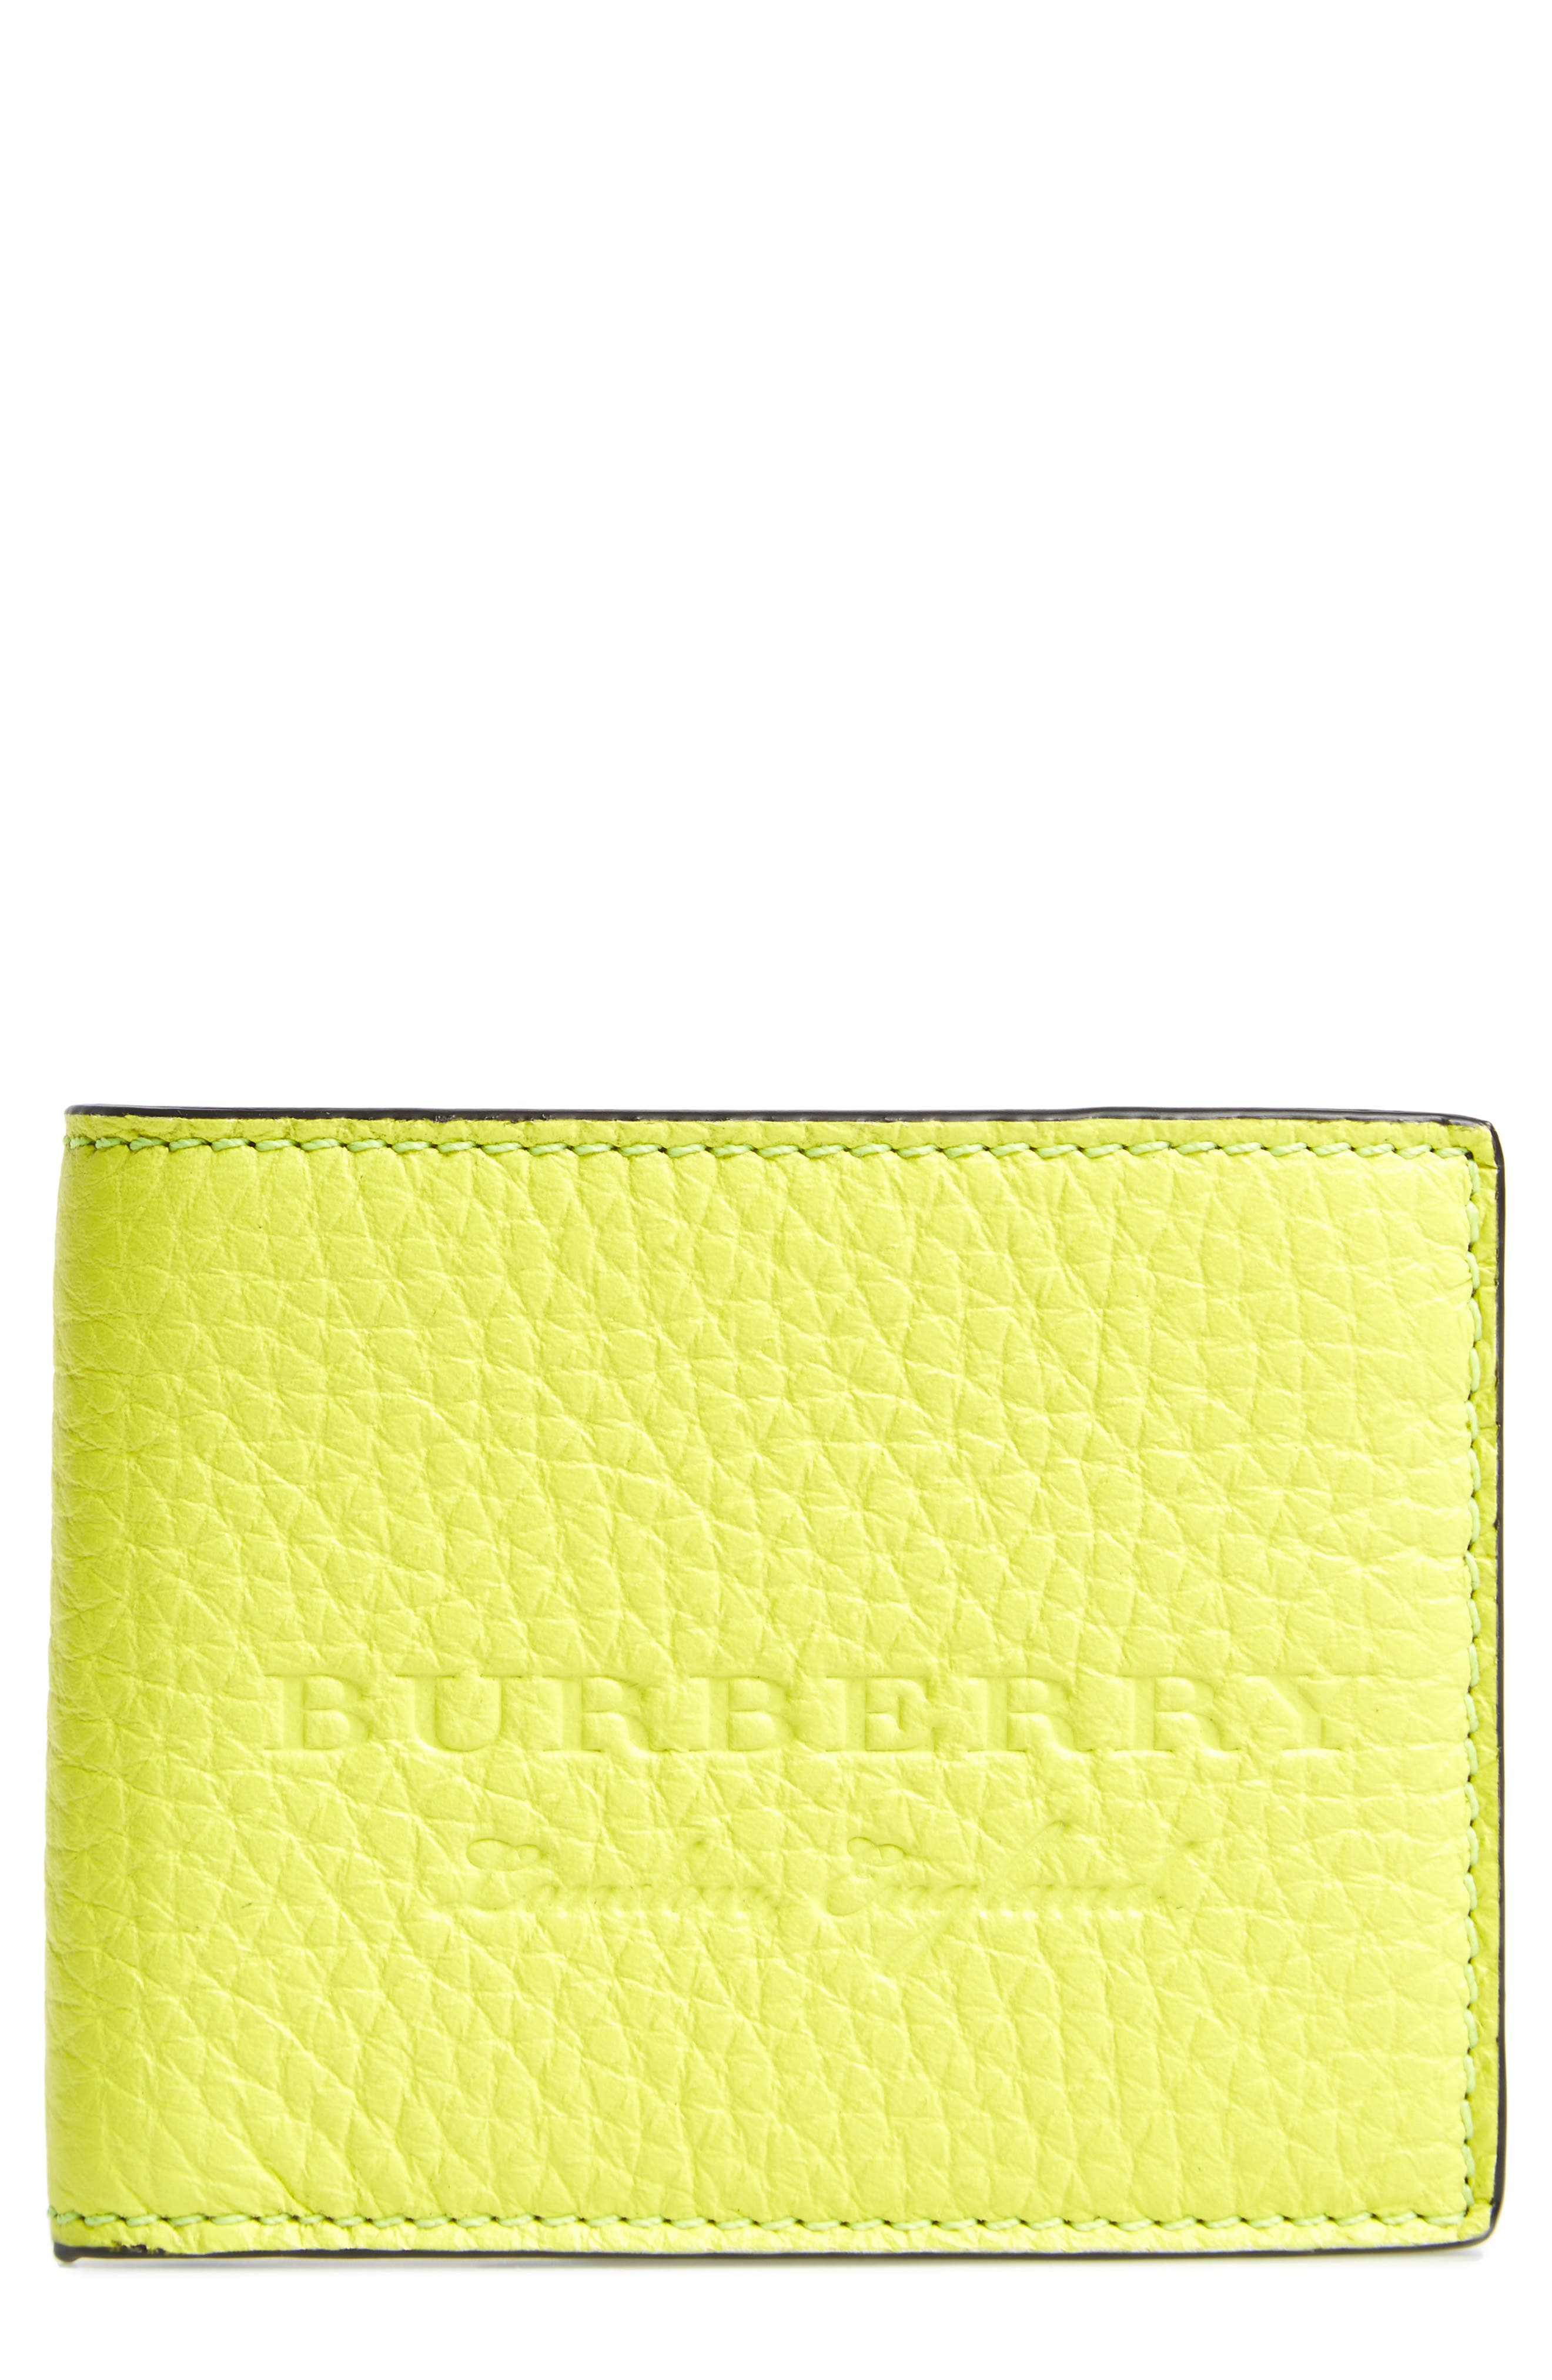 Leather Bifold Wallet,                             Main thumbnail 2, color,